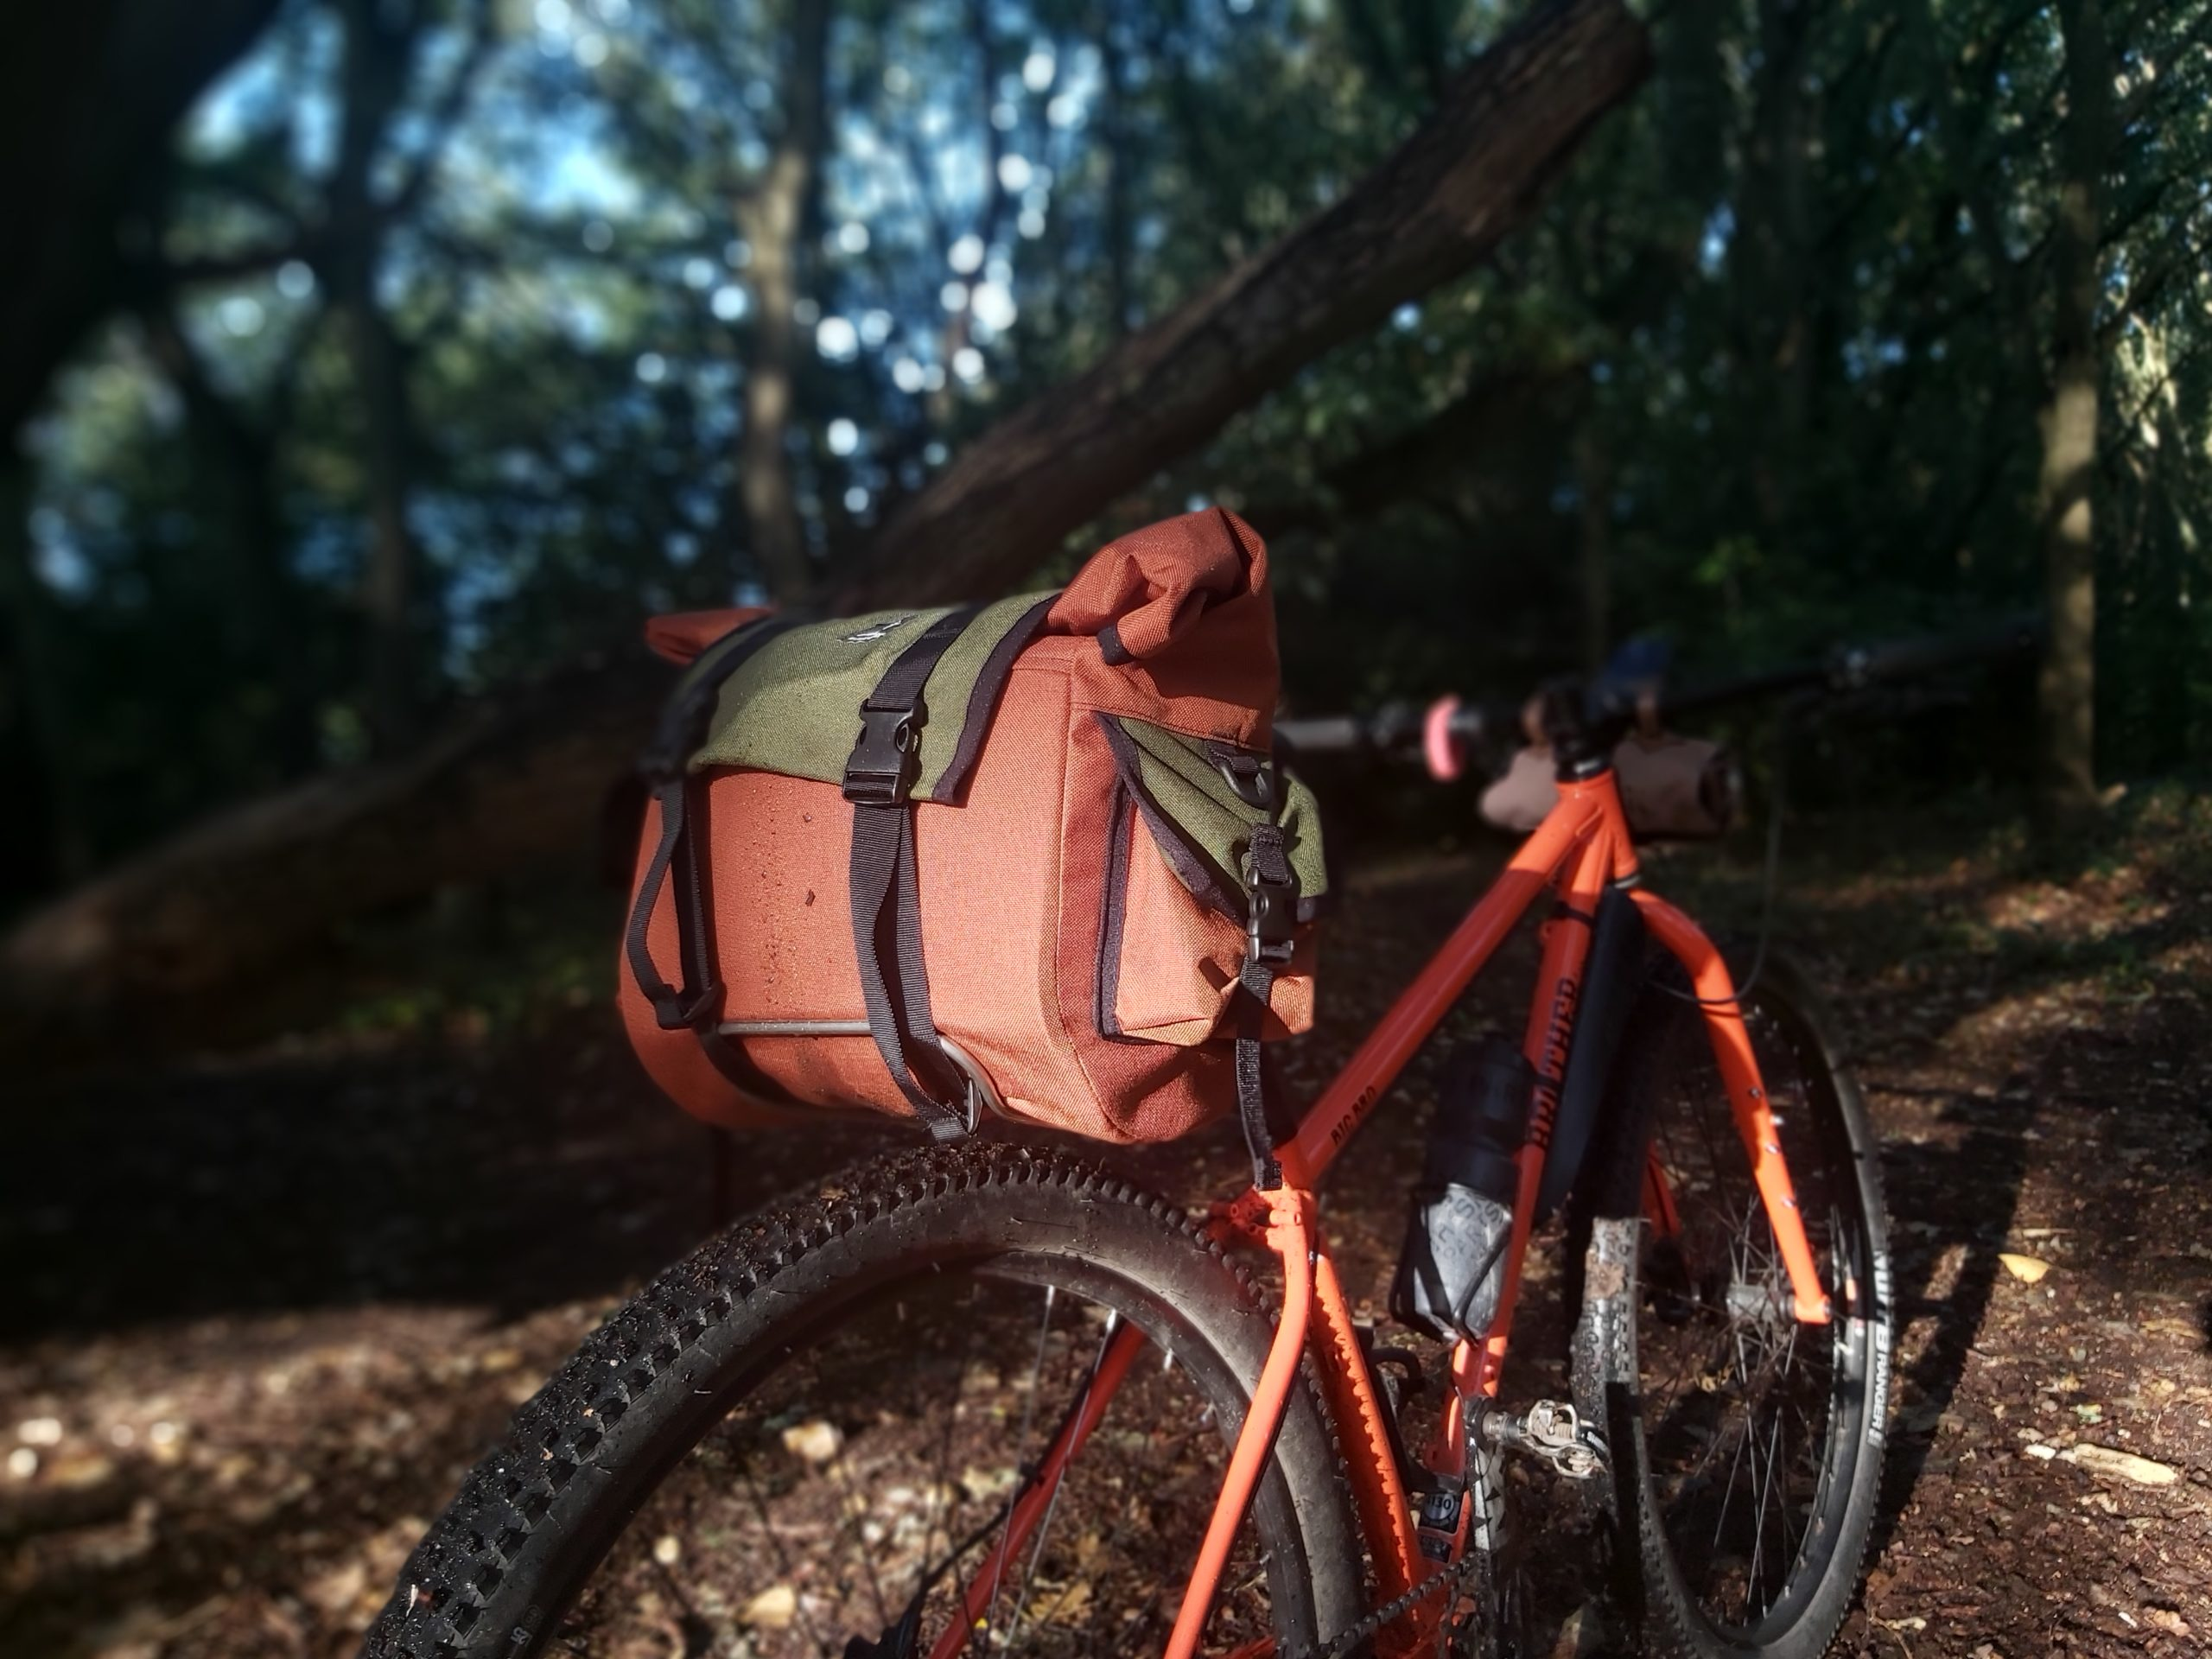 Shazam! Saddle bag Taylor Doyle